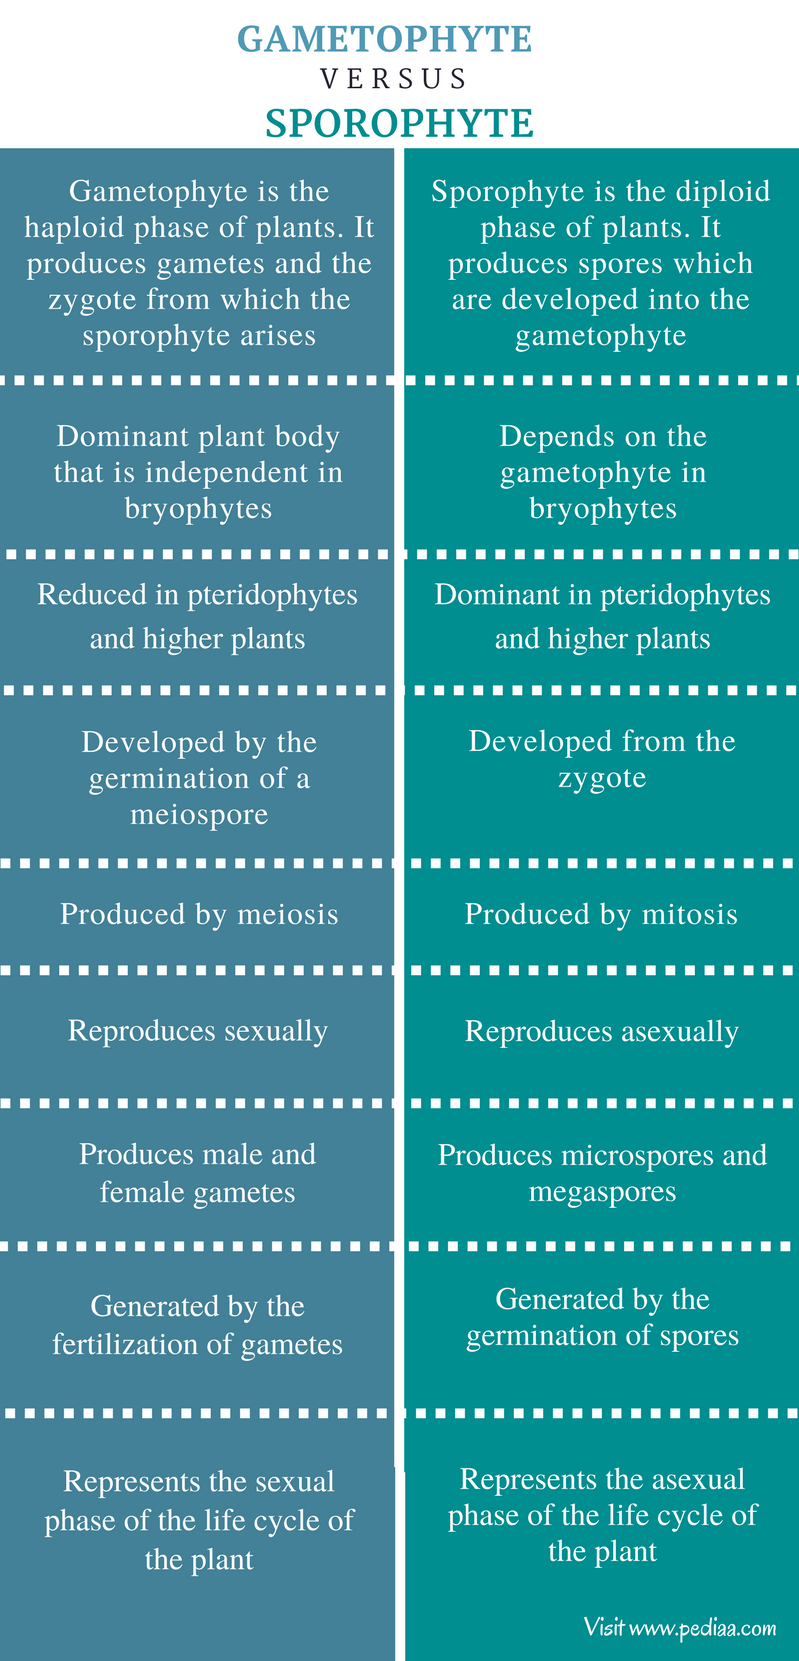 Difference Between Gametophyte and Sporophyte - Comparison Summary